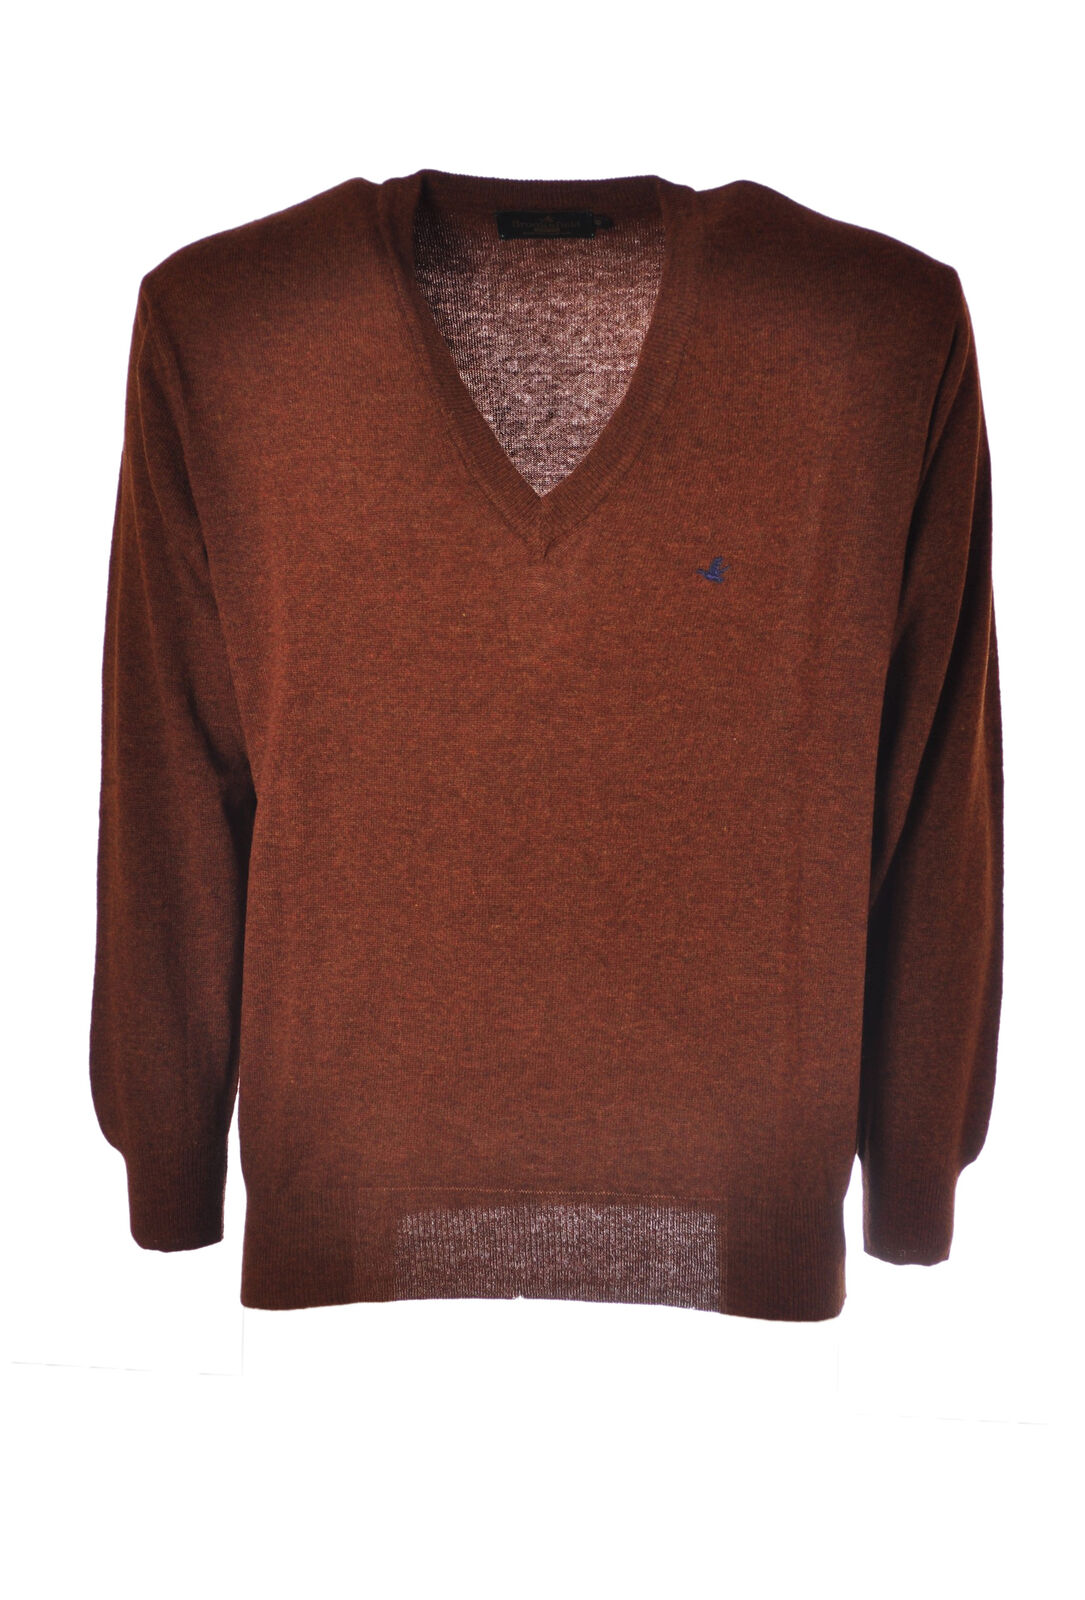 Brooksfield  -  Sweaters - Male - Brown - 4543423A185040